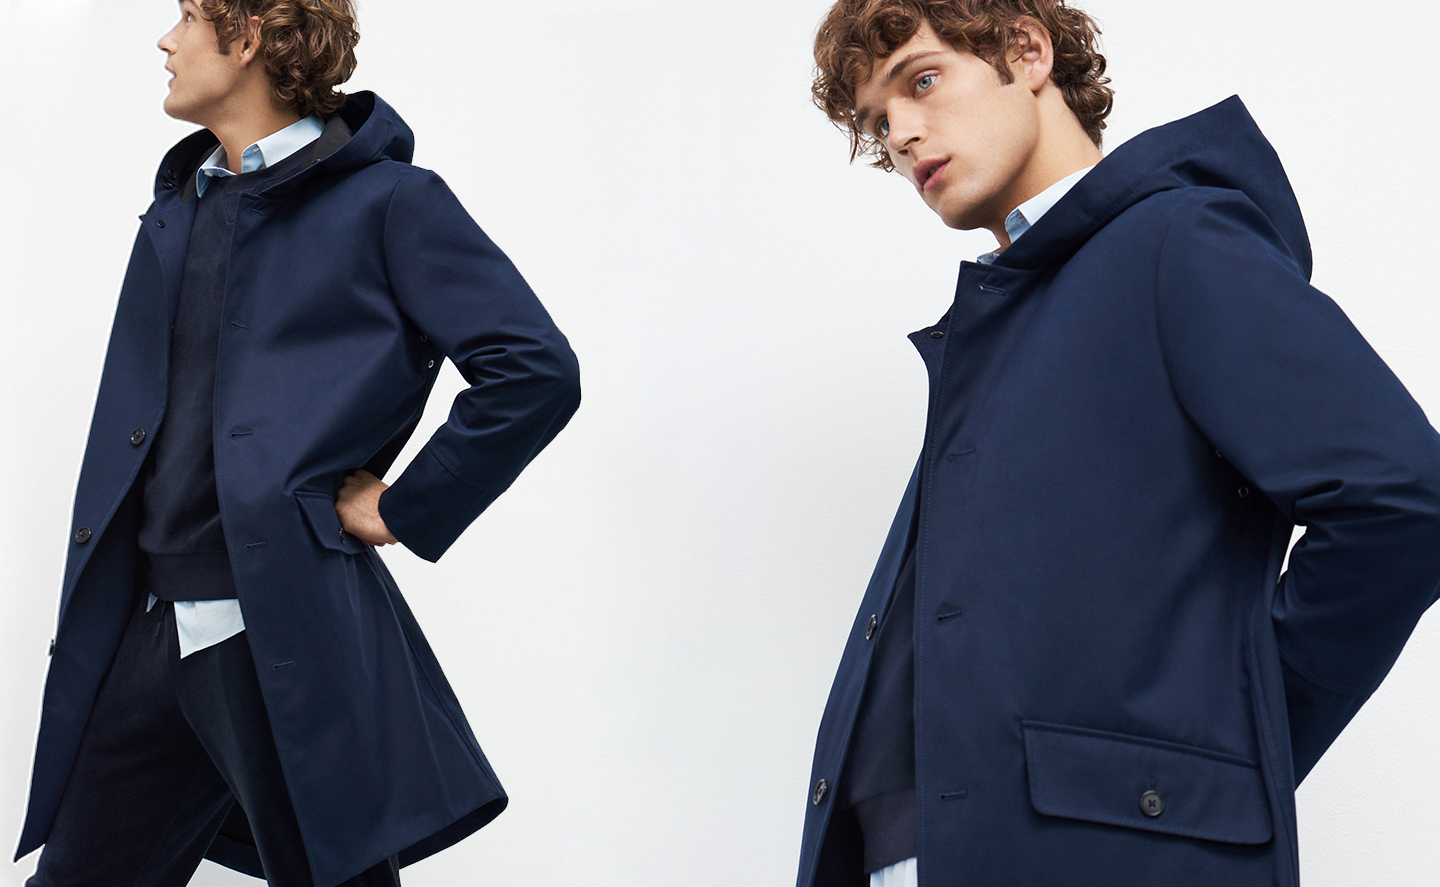 Men's coats, jackets, and outerwear